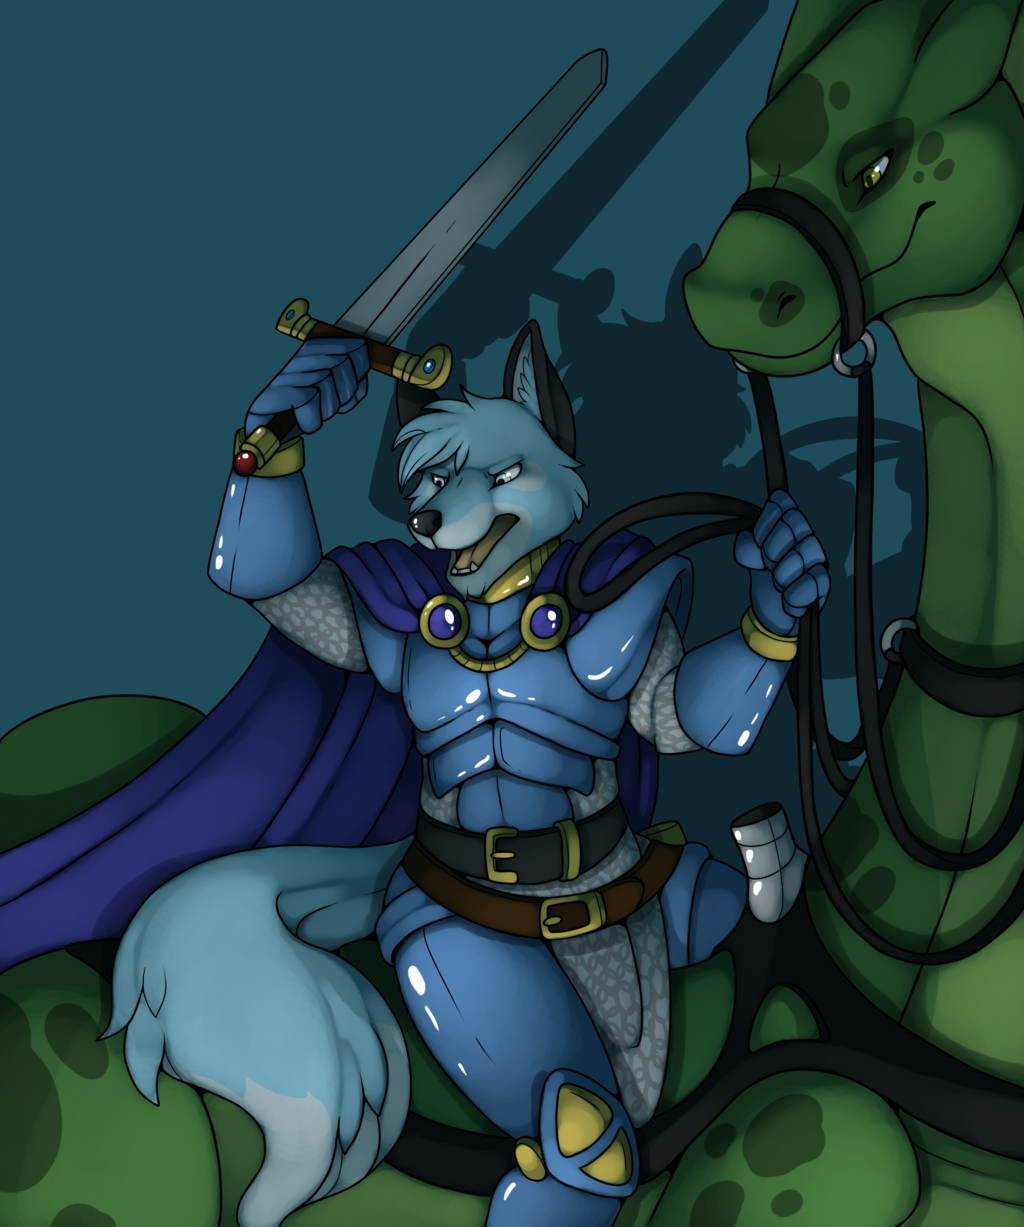 Most recent image: My furry character finished